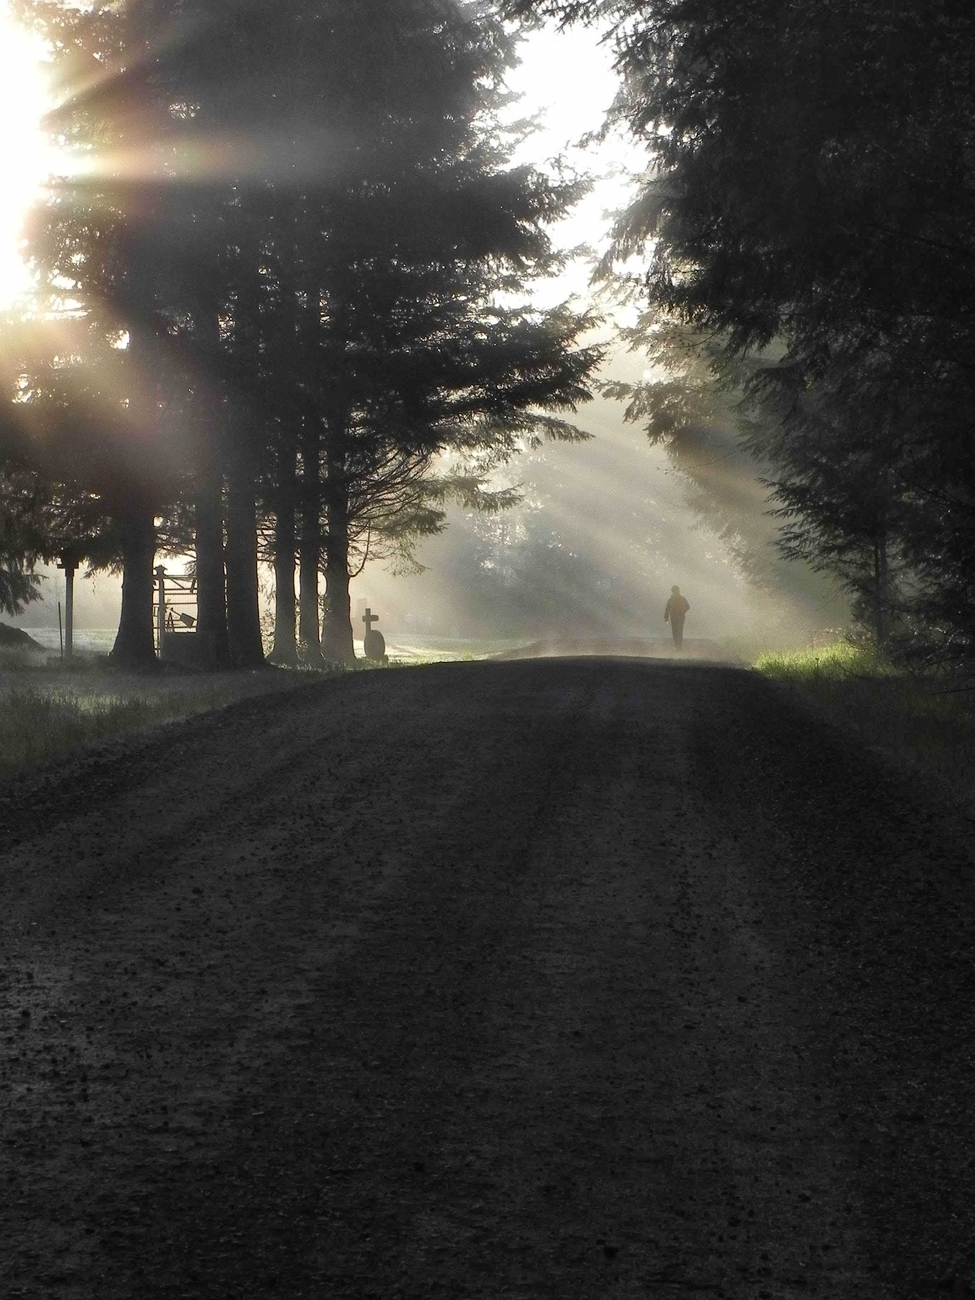 This was an accidental shot of my neighbor walking one early morning. I was shooting the Ray's through the trees when she popped out of what seemed like no where!